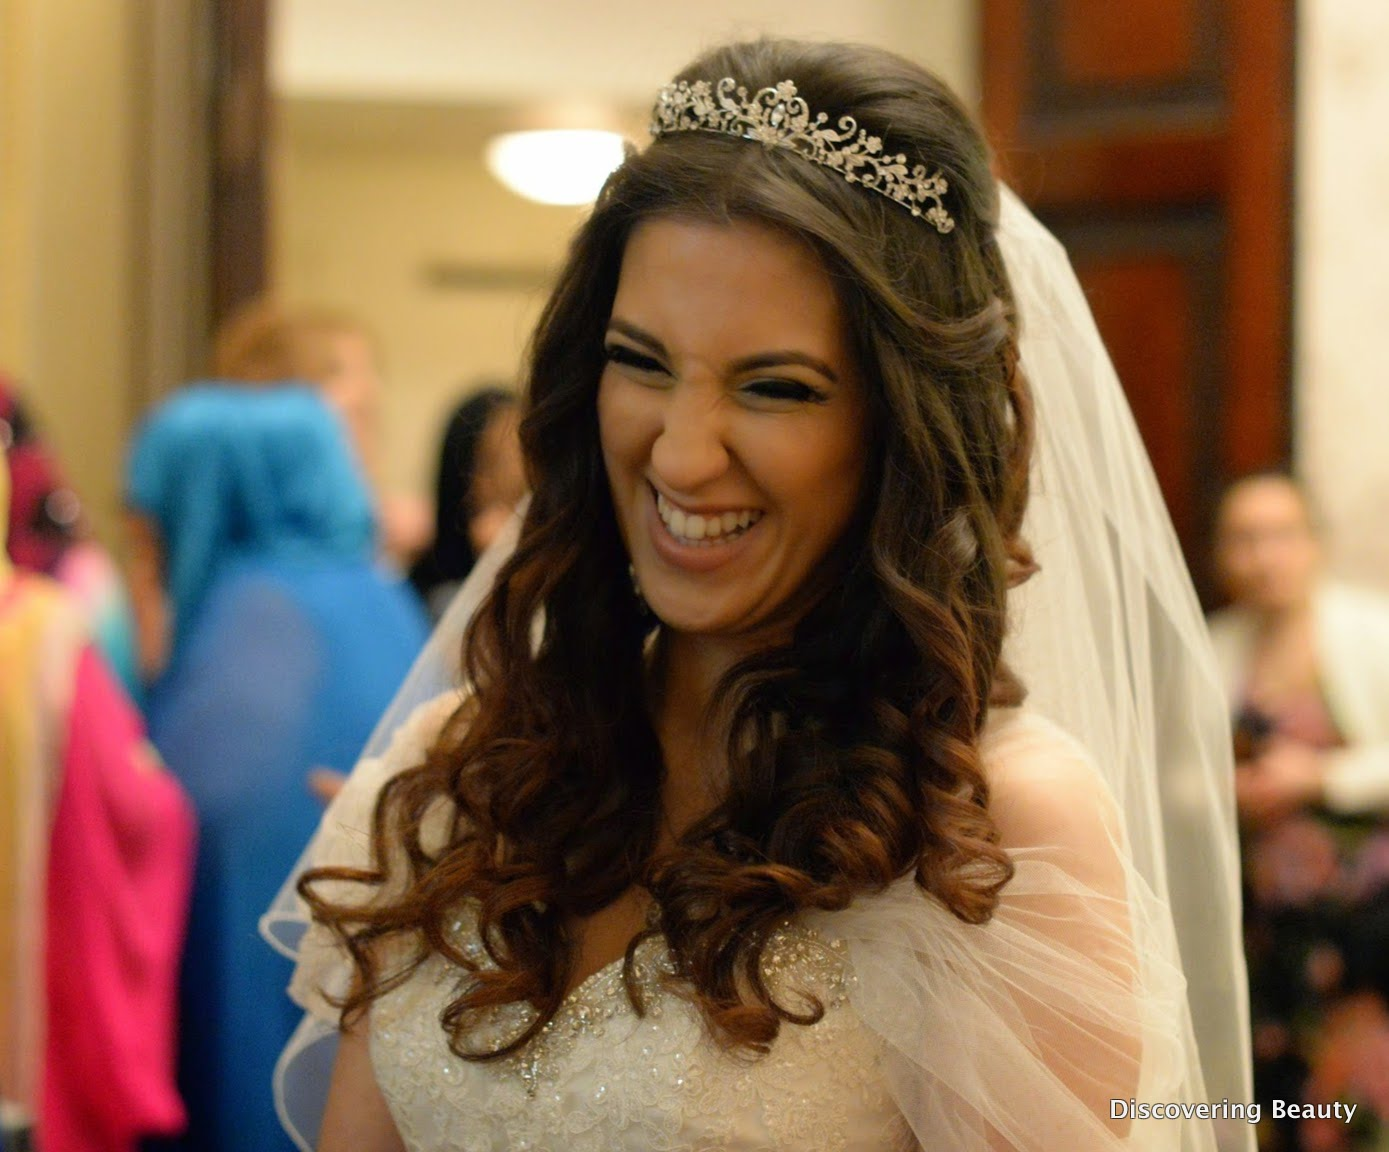 smiling bride happy wedding hair tiara